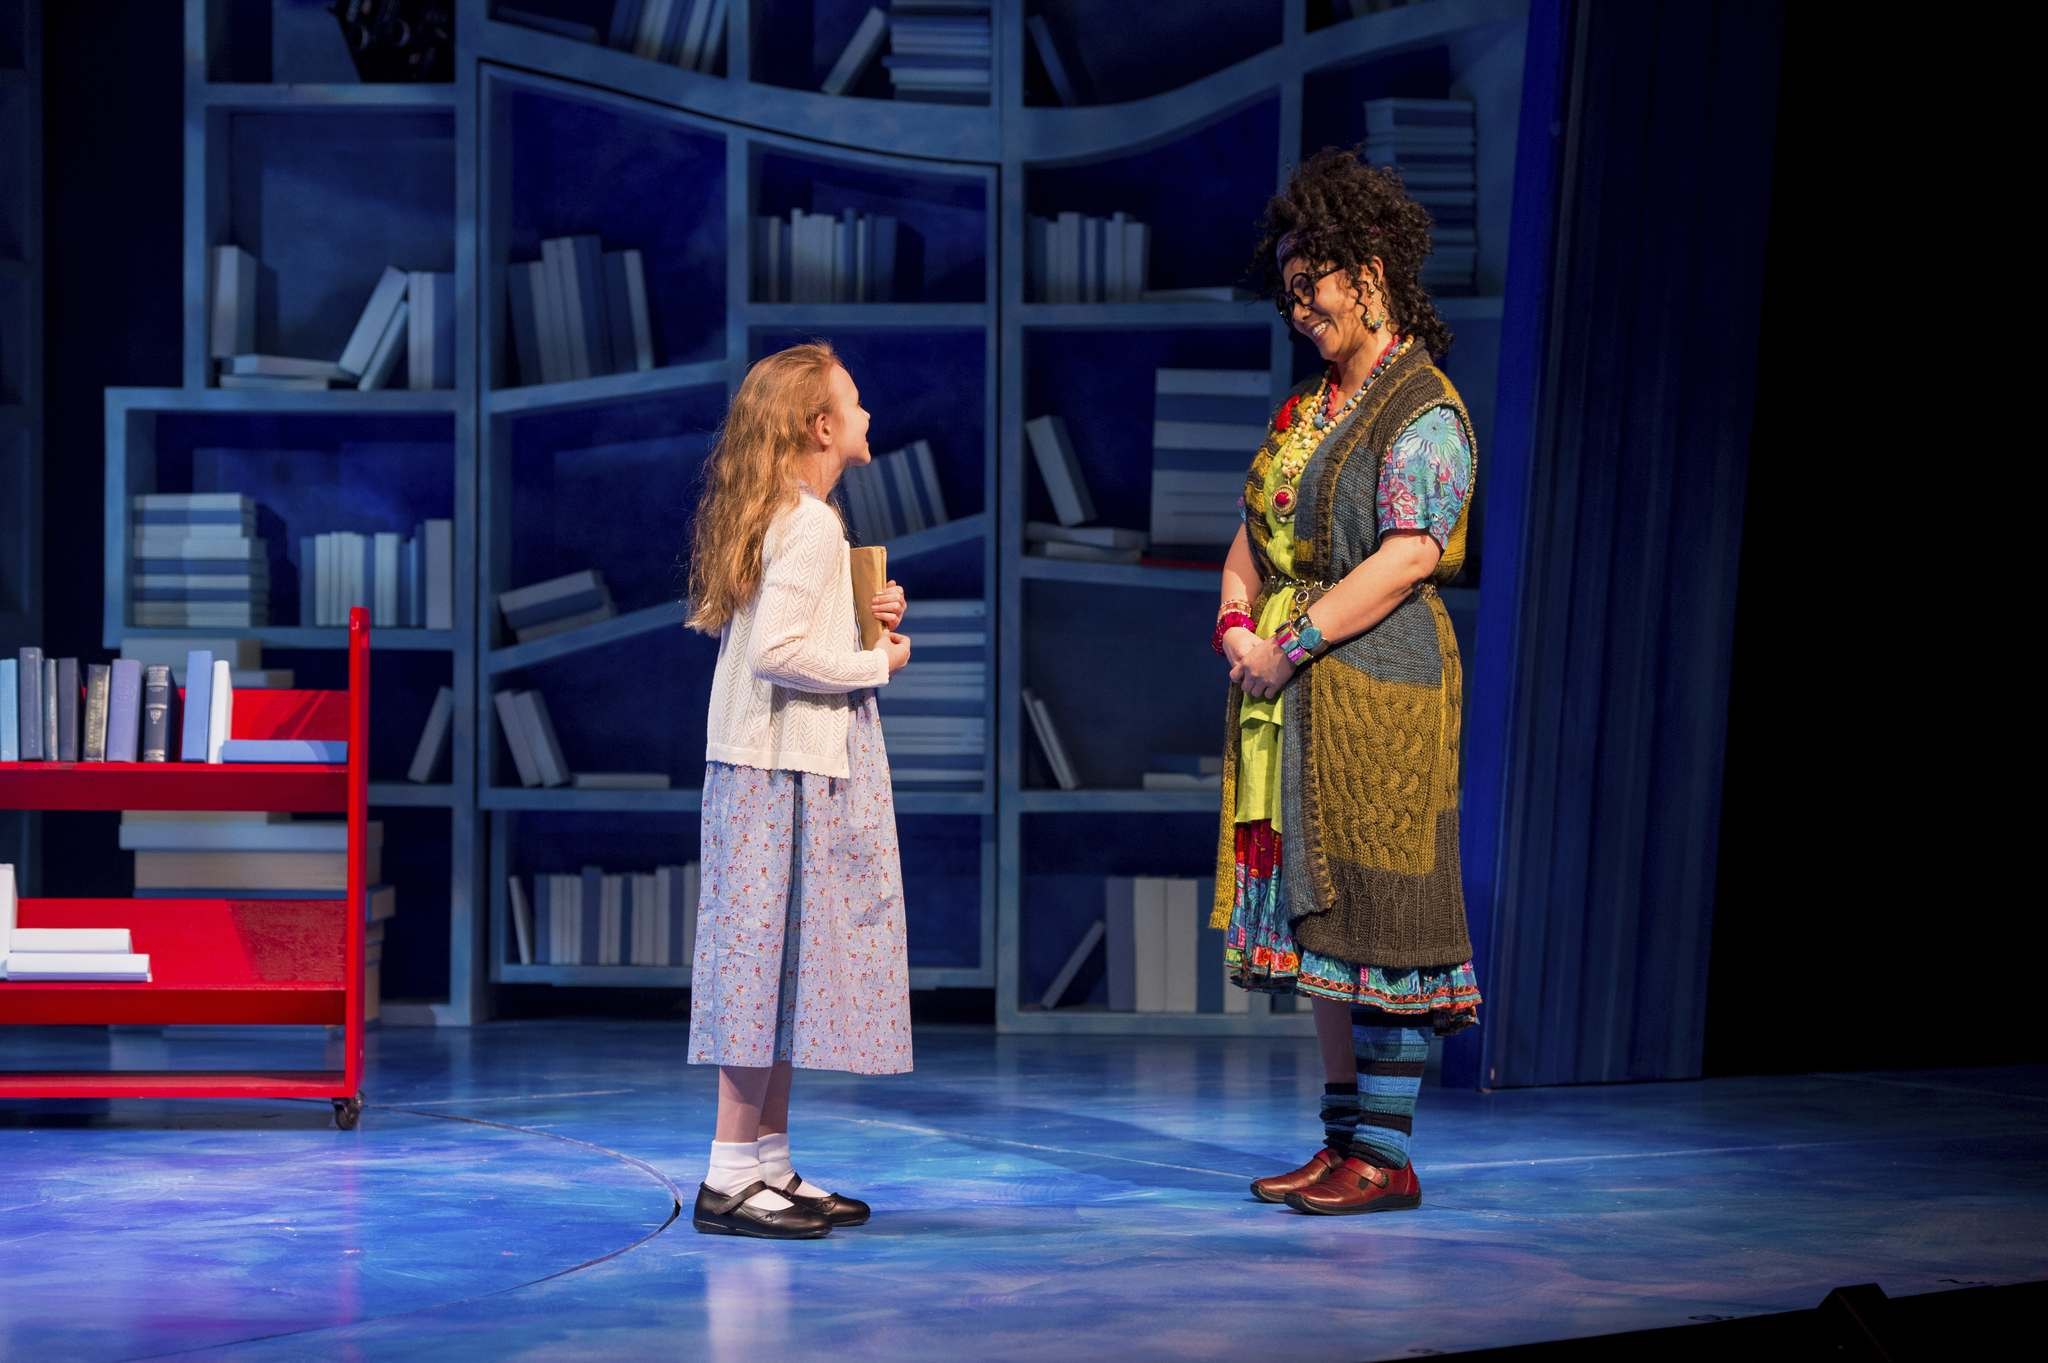 Anna Anderson-Epp and Sharon Crandall in Matilda. Photos by Dylan Hewlett.</p></p>